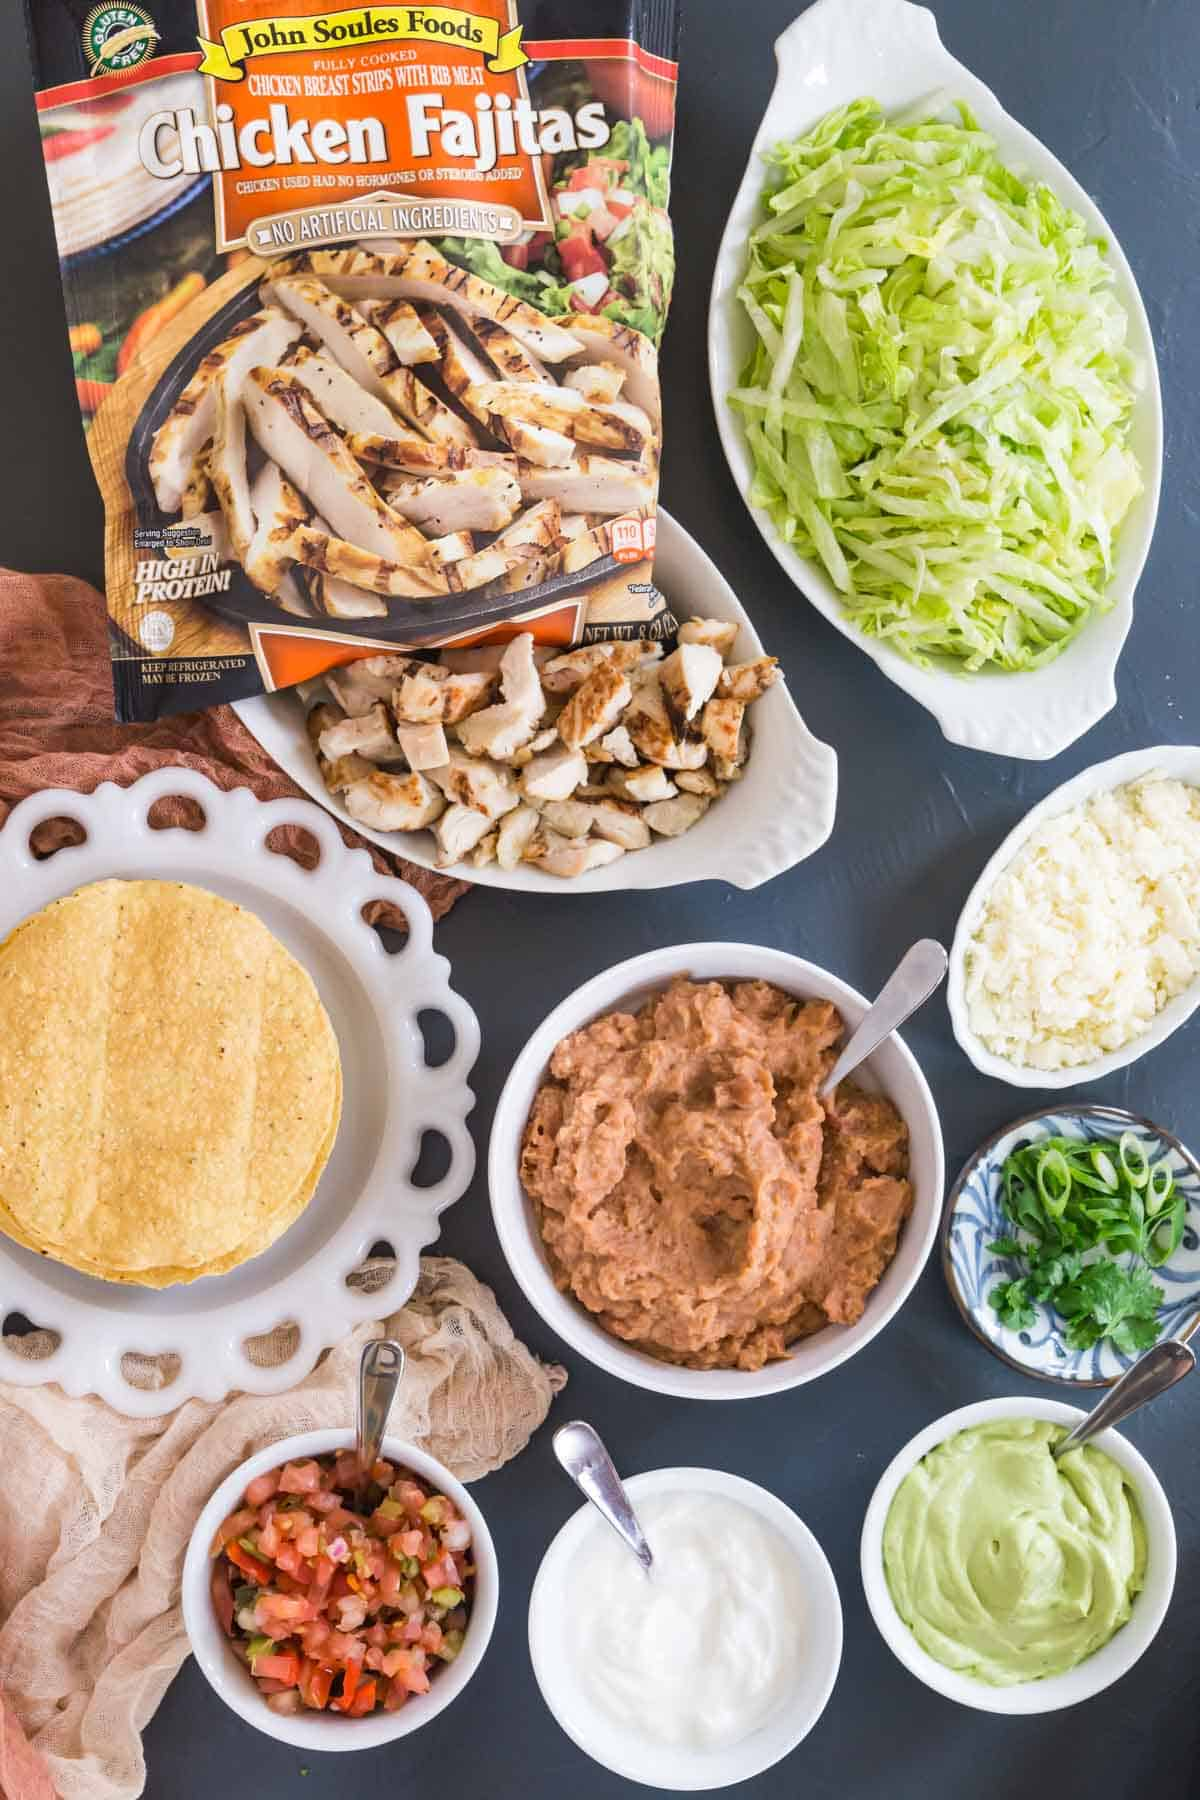 a plate of tostada shells with bowls of fully cooked chicken strips, lettuce, crumble cotija cheese, refried beans, salsa, sour cream, guacamole, and cilantro and scallions